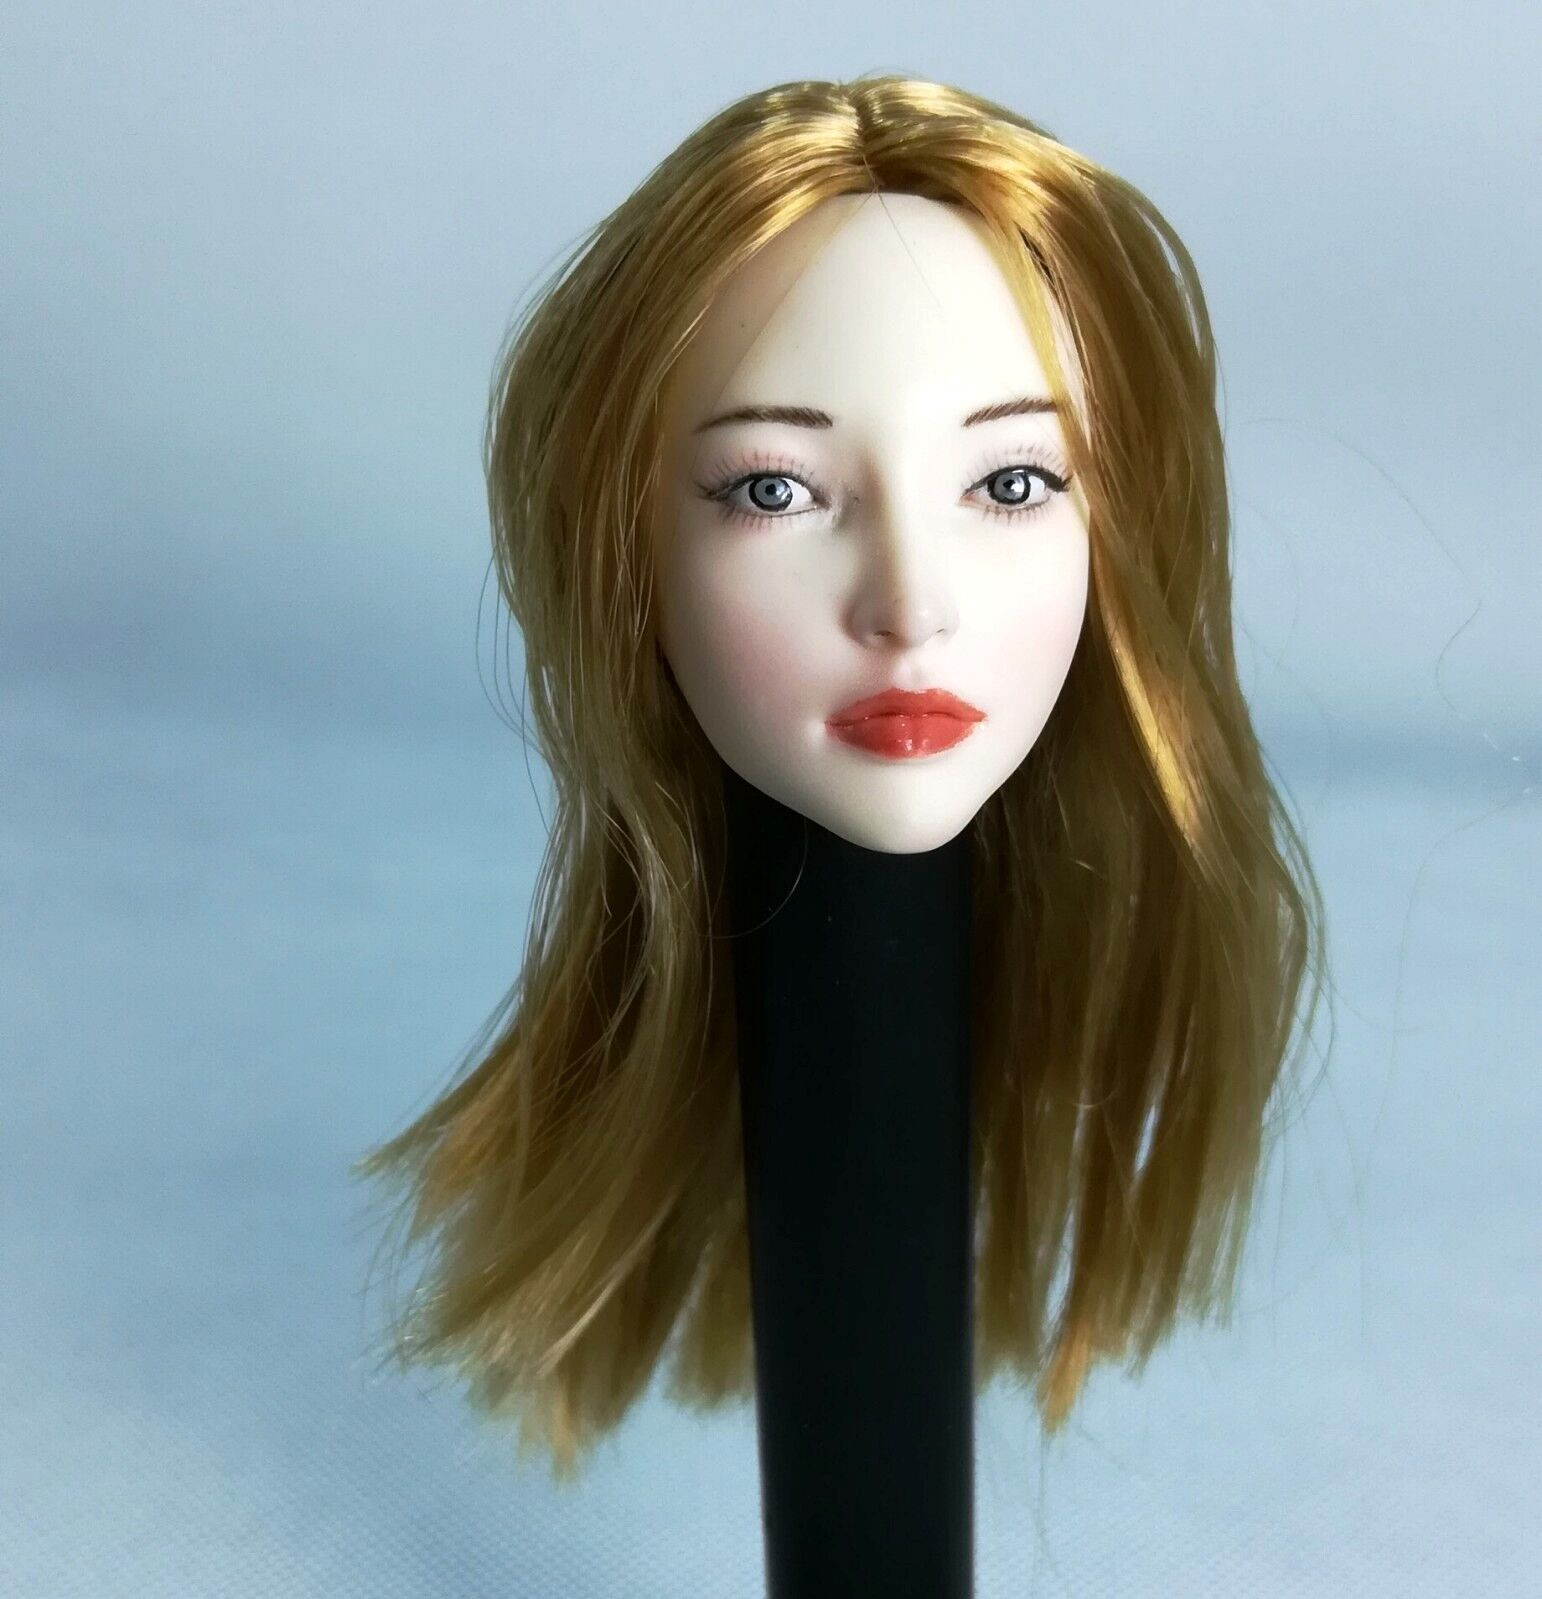 1 6 Scale Female Blond Hair Pale Head Sculpt For Phicen Action Figure Body Gifts